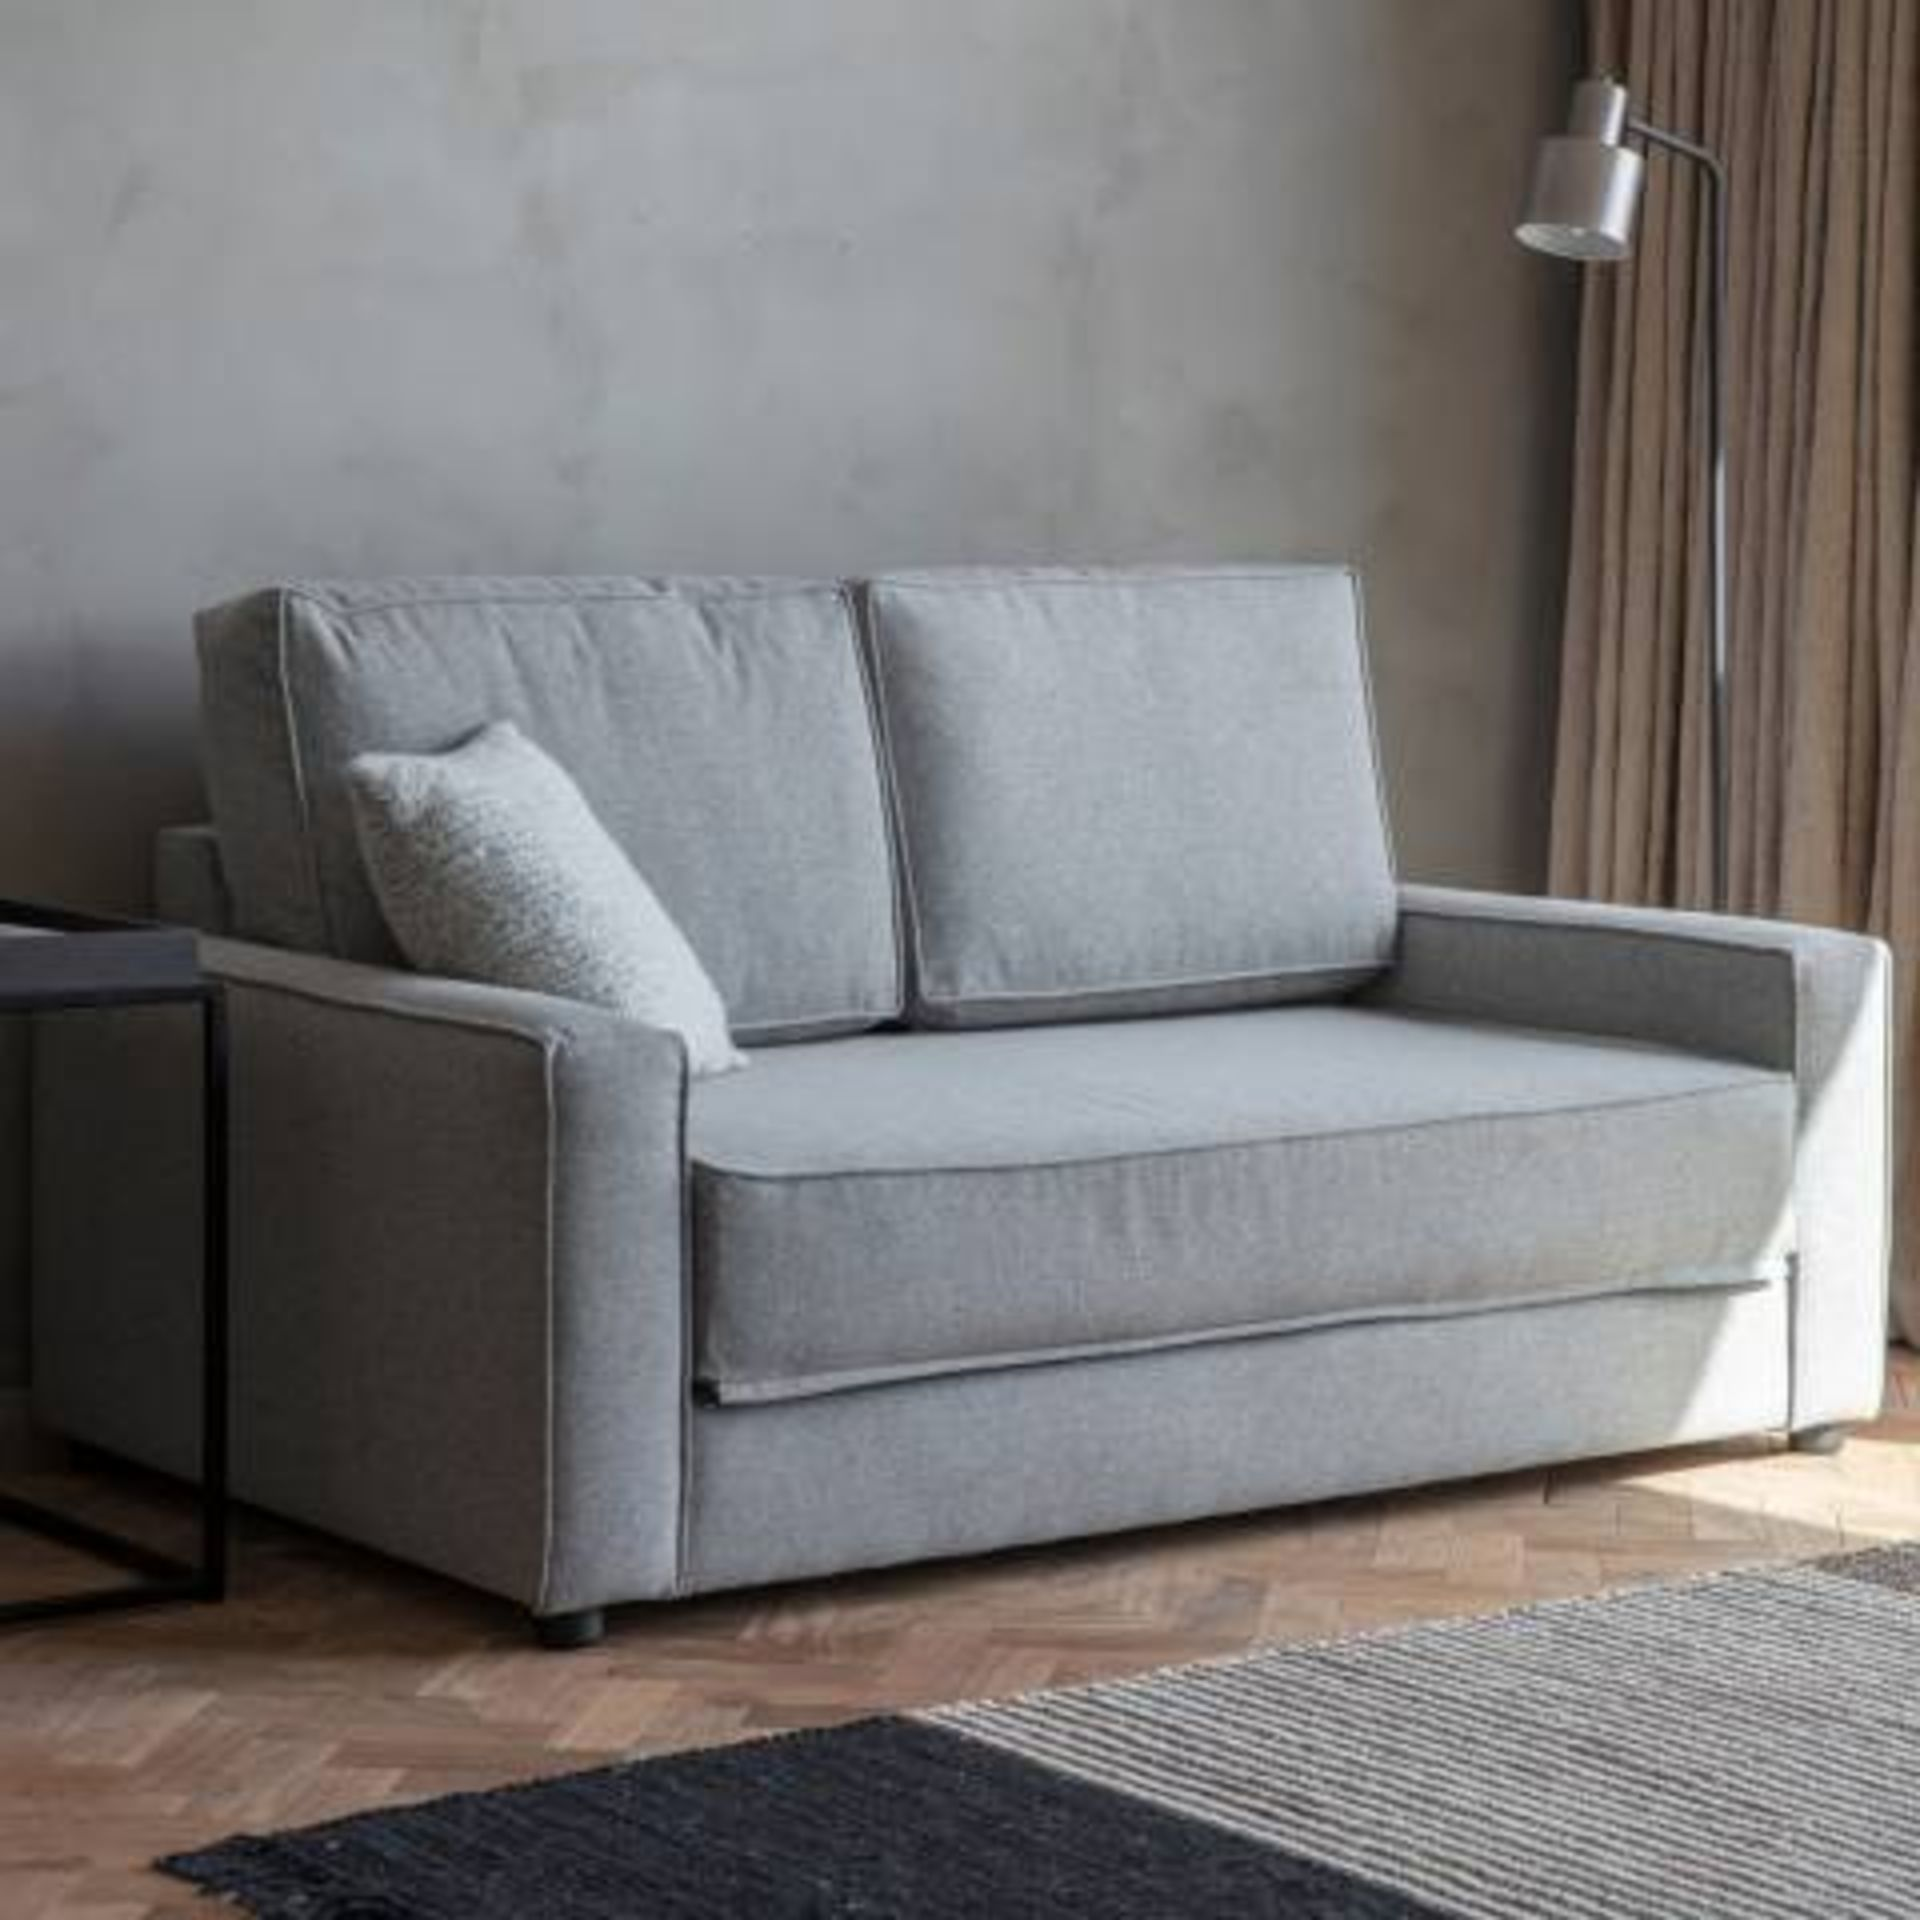 Eastwood Sofa Bed Pocket Sprung King Mattress Unique in design our Eastwood sofa bed is fully pocket